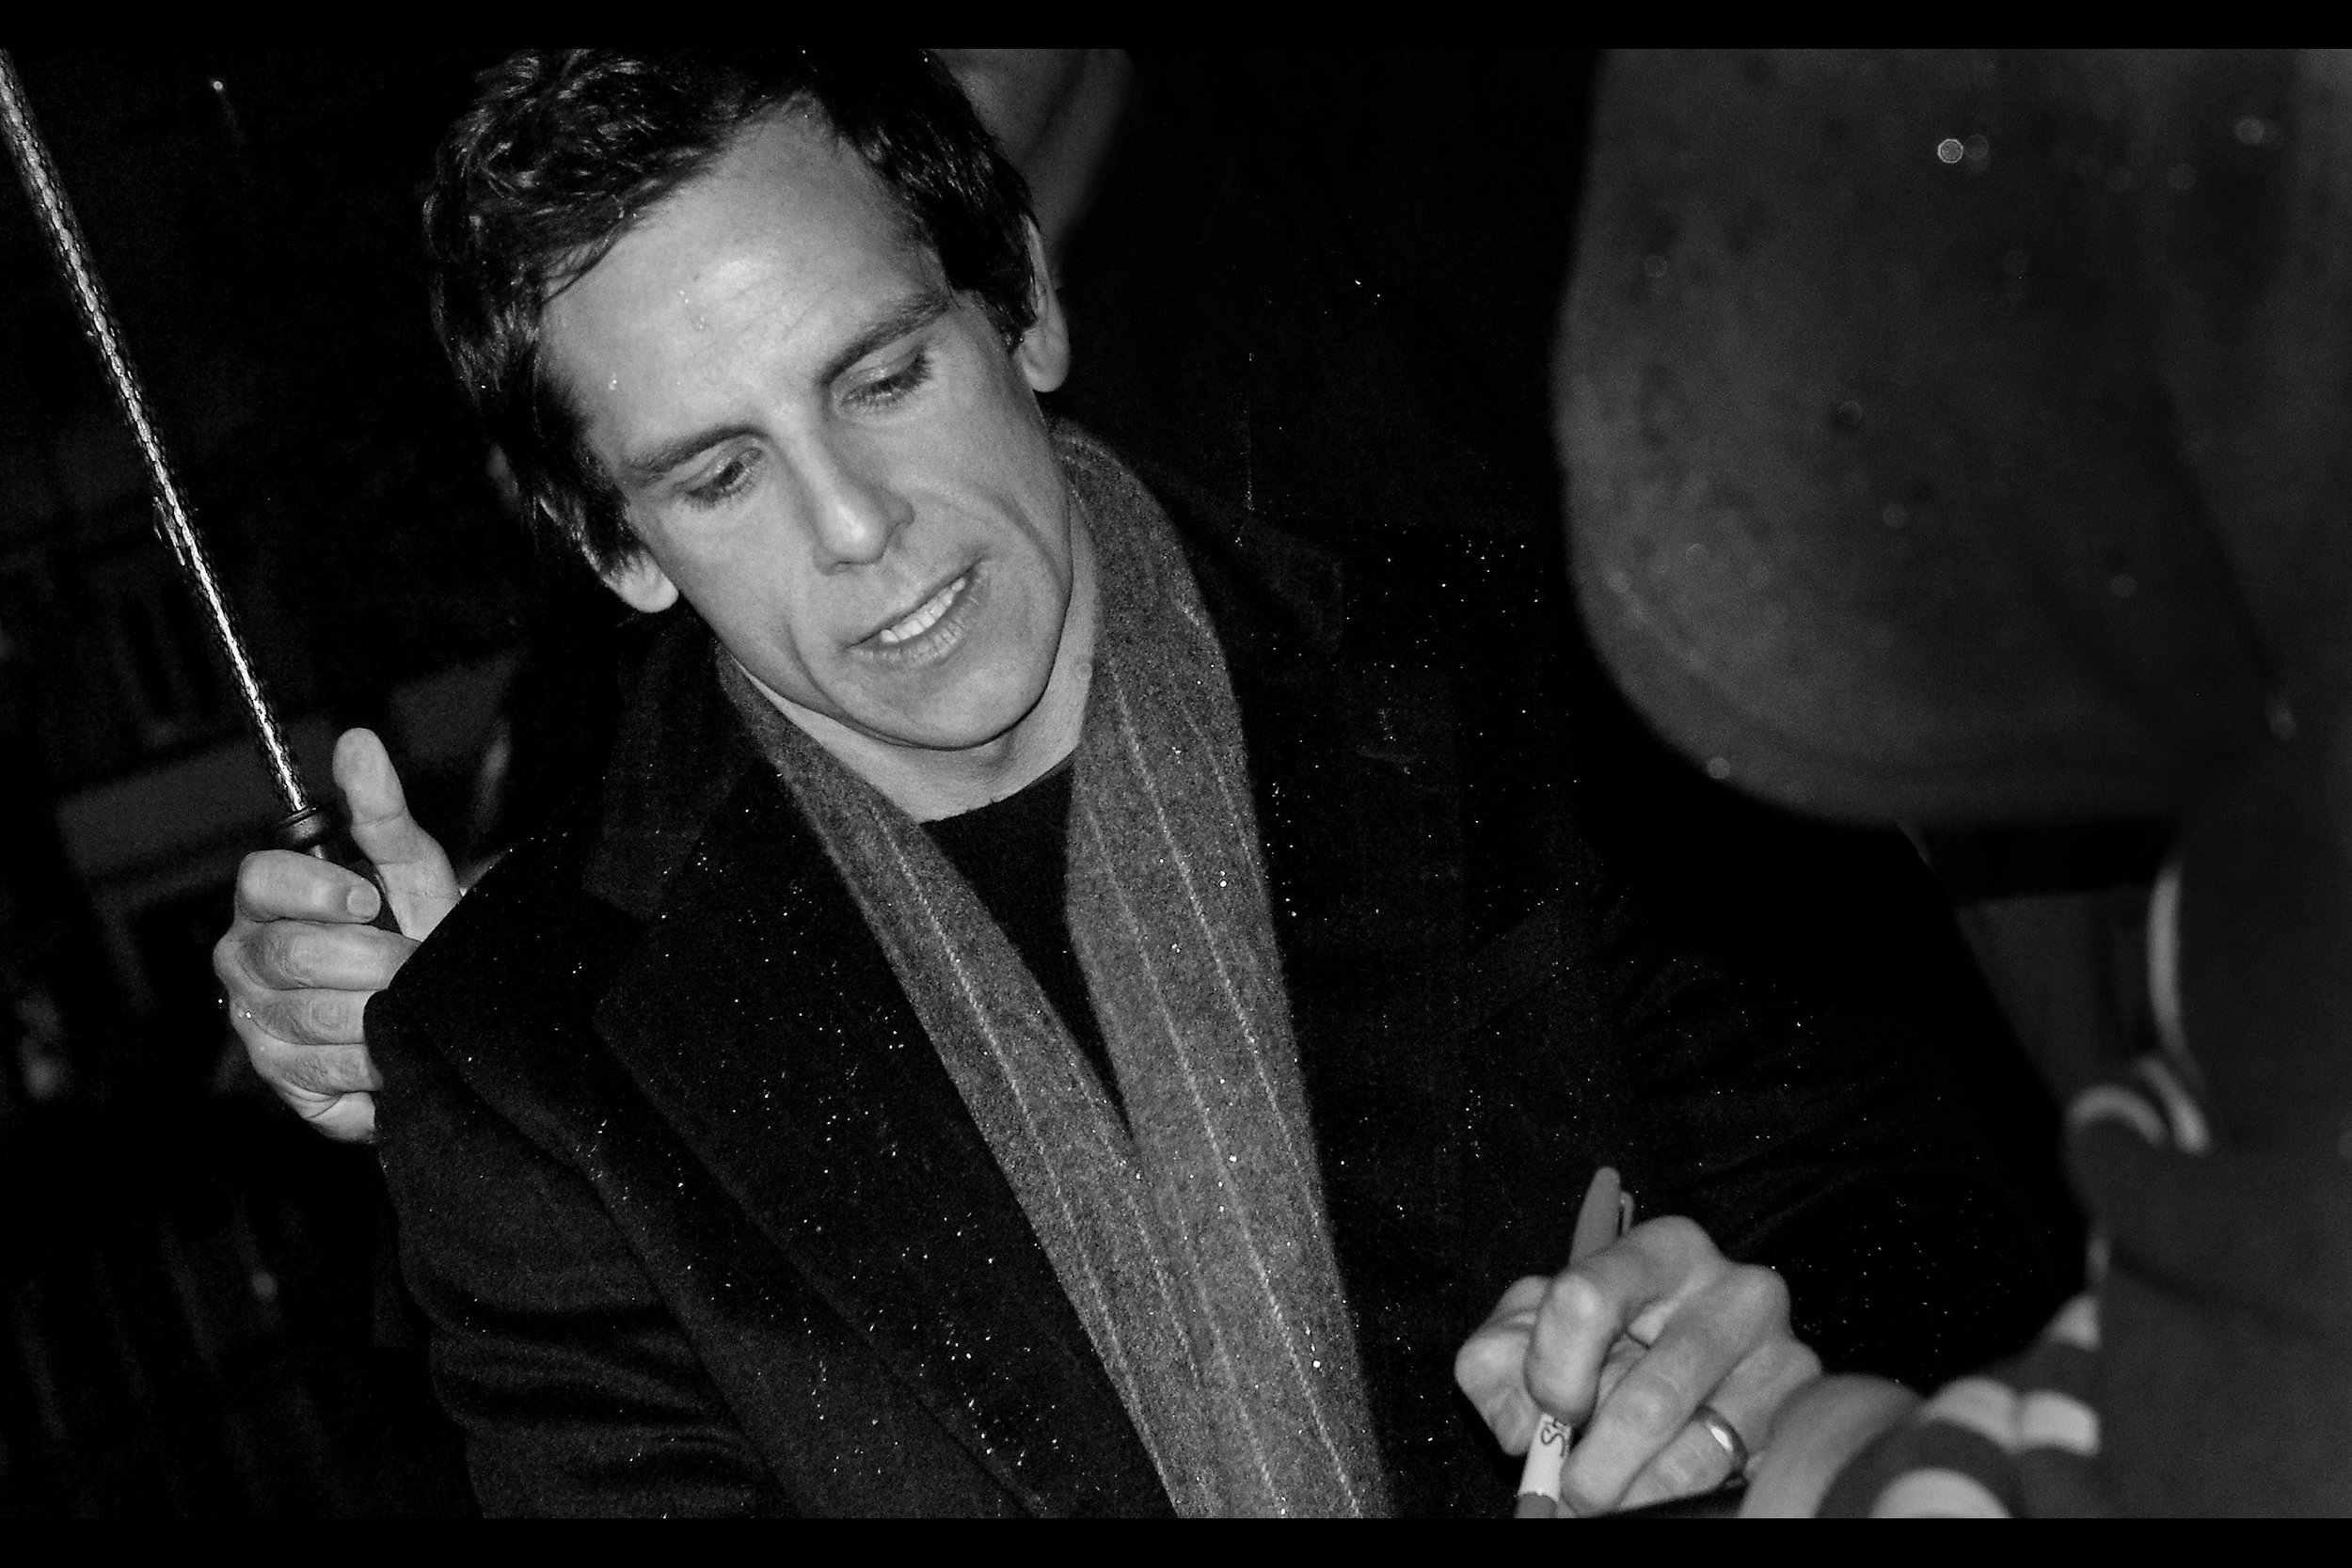 Ben Stiller, hopefully signing a cheque made out to the Derek Zoolander Centre For Kids Who Can't Read Good And Want To Learn How To Do Other Things Good Too. (In other news : My K10D is weatherproof, repeat, weatherproof)